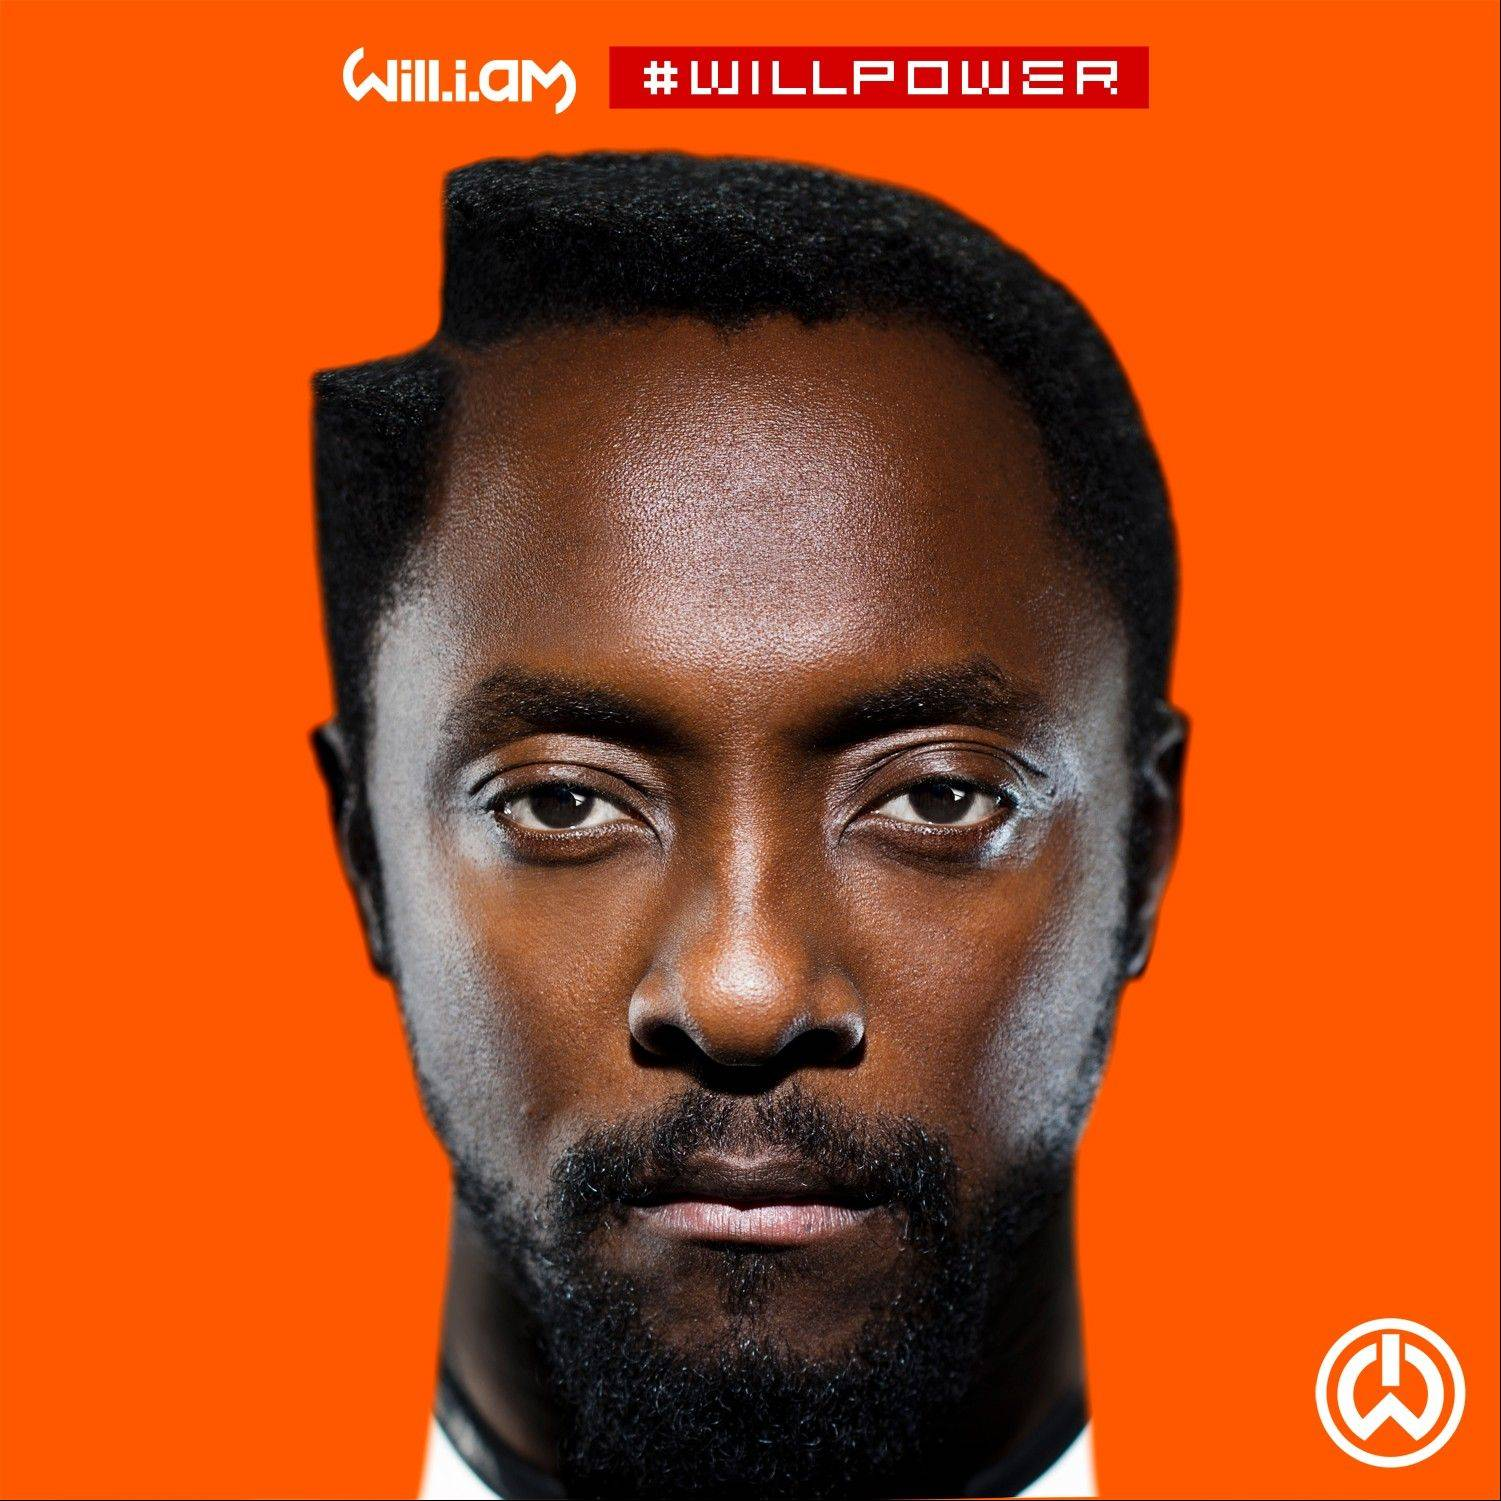 """willpower"" by will.i.am"